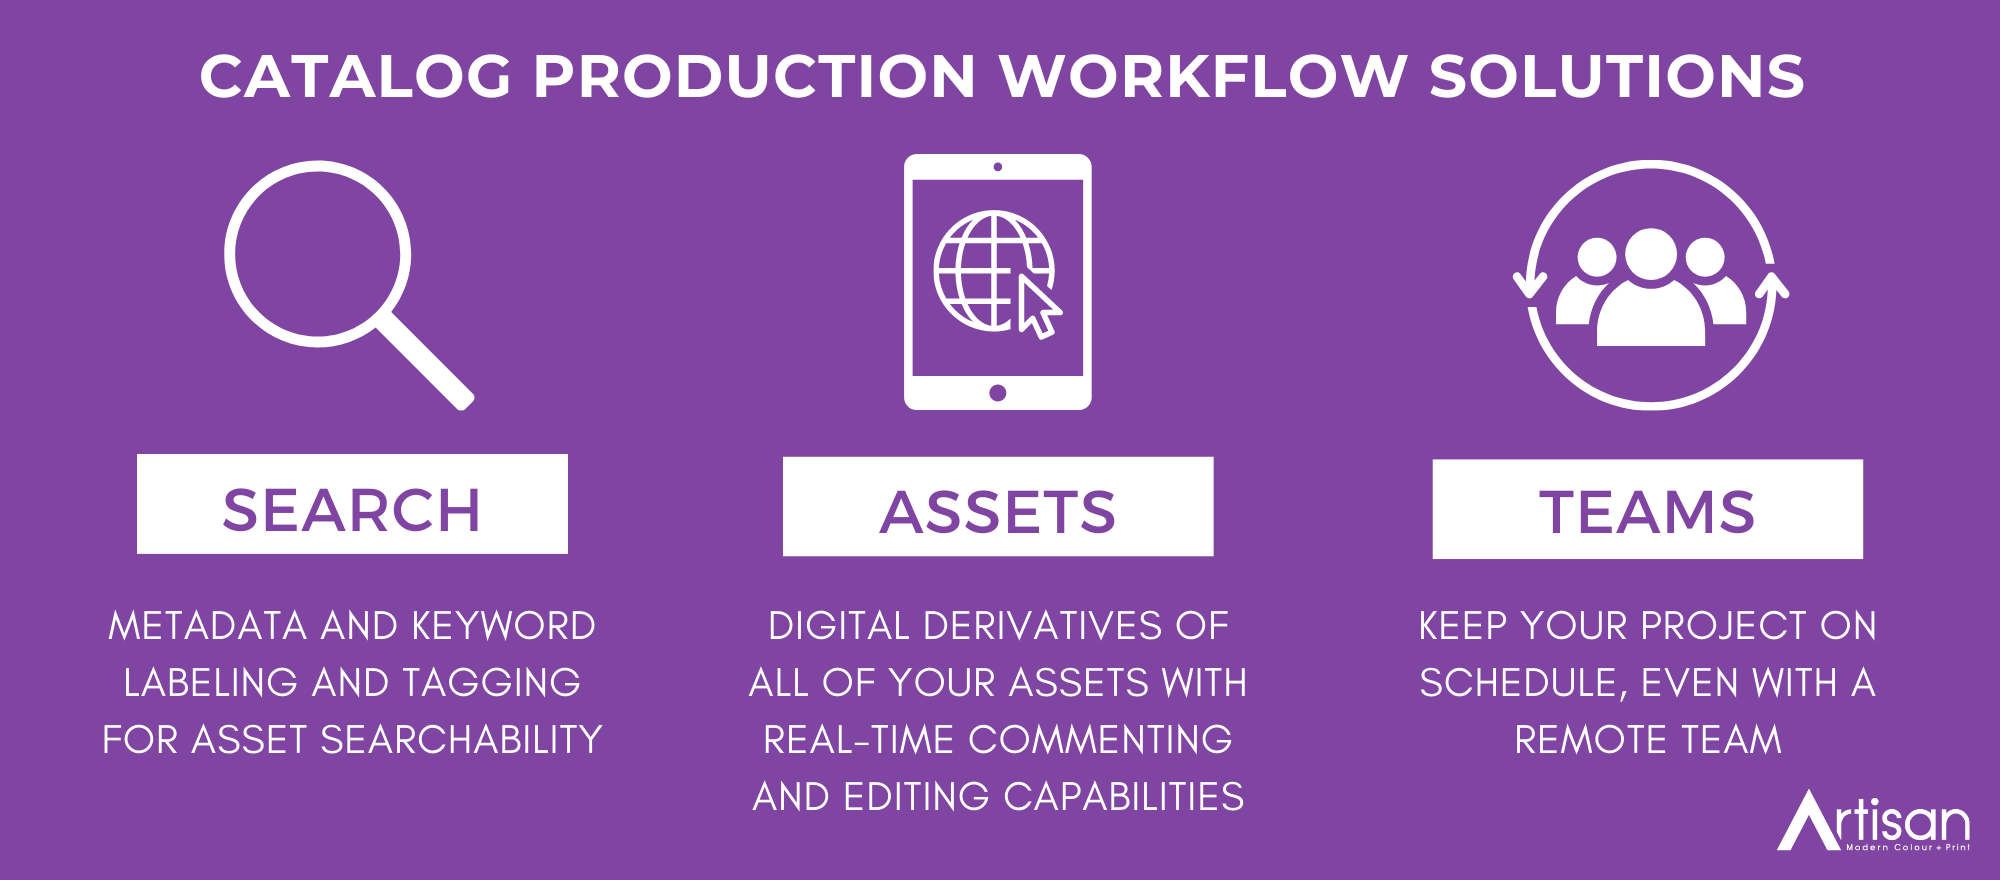 Catalog Workflow Solutions graphic